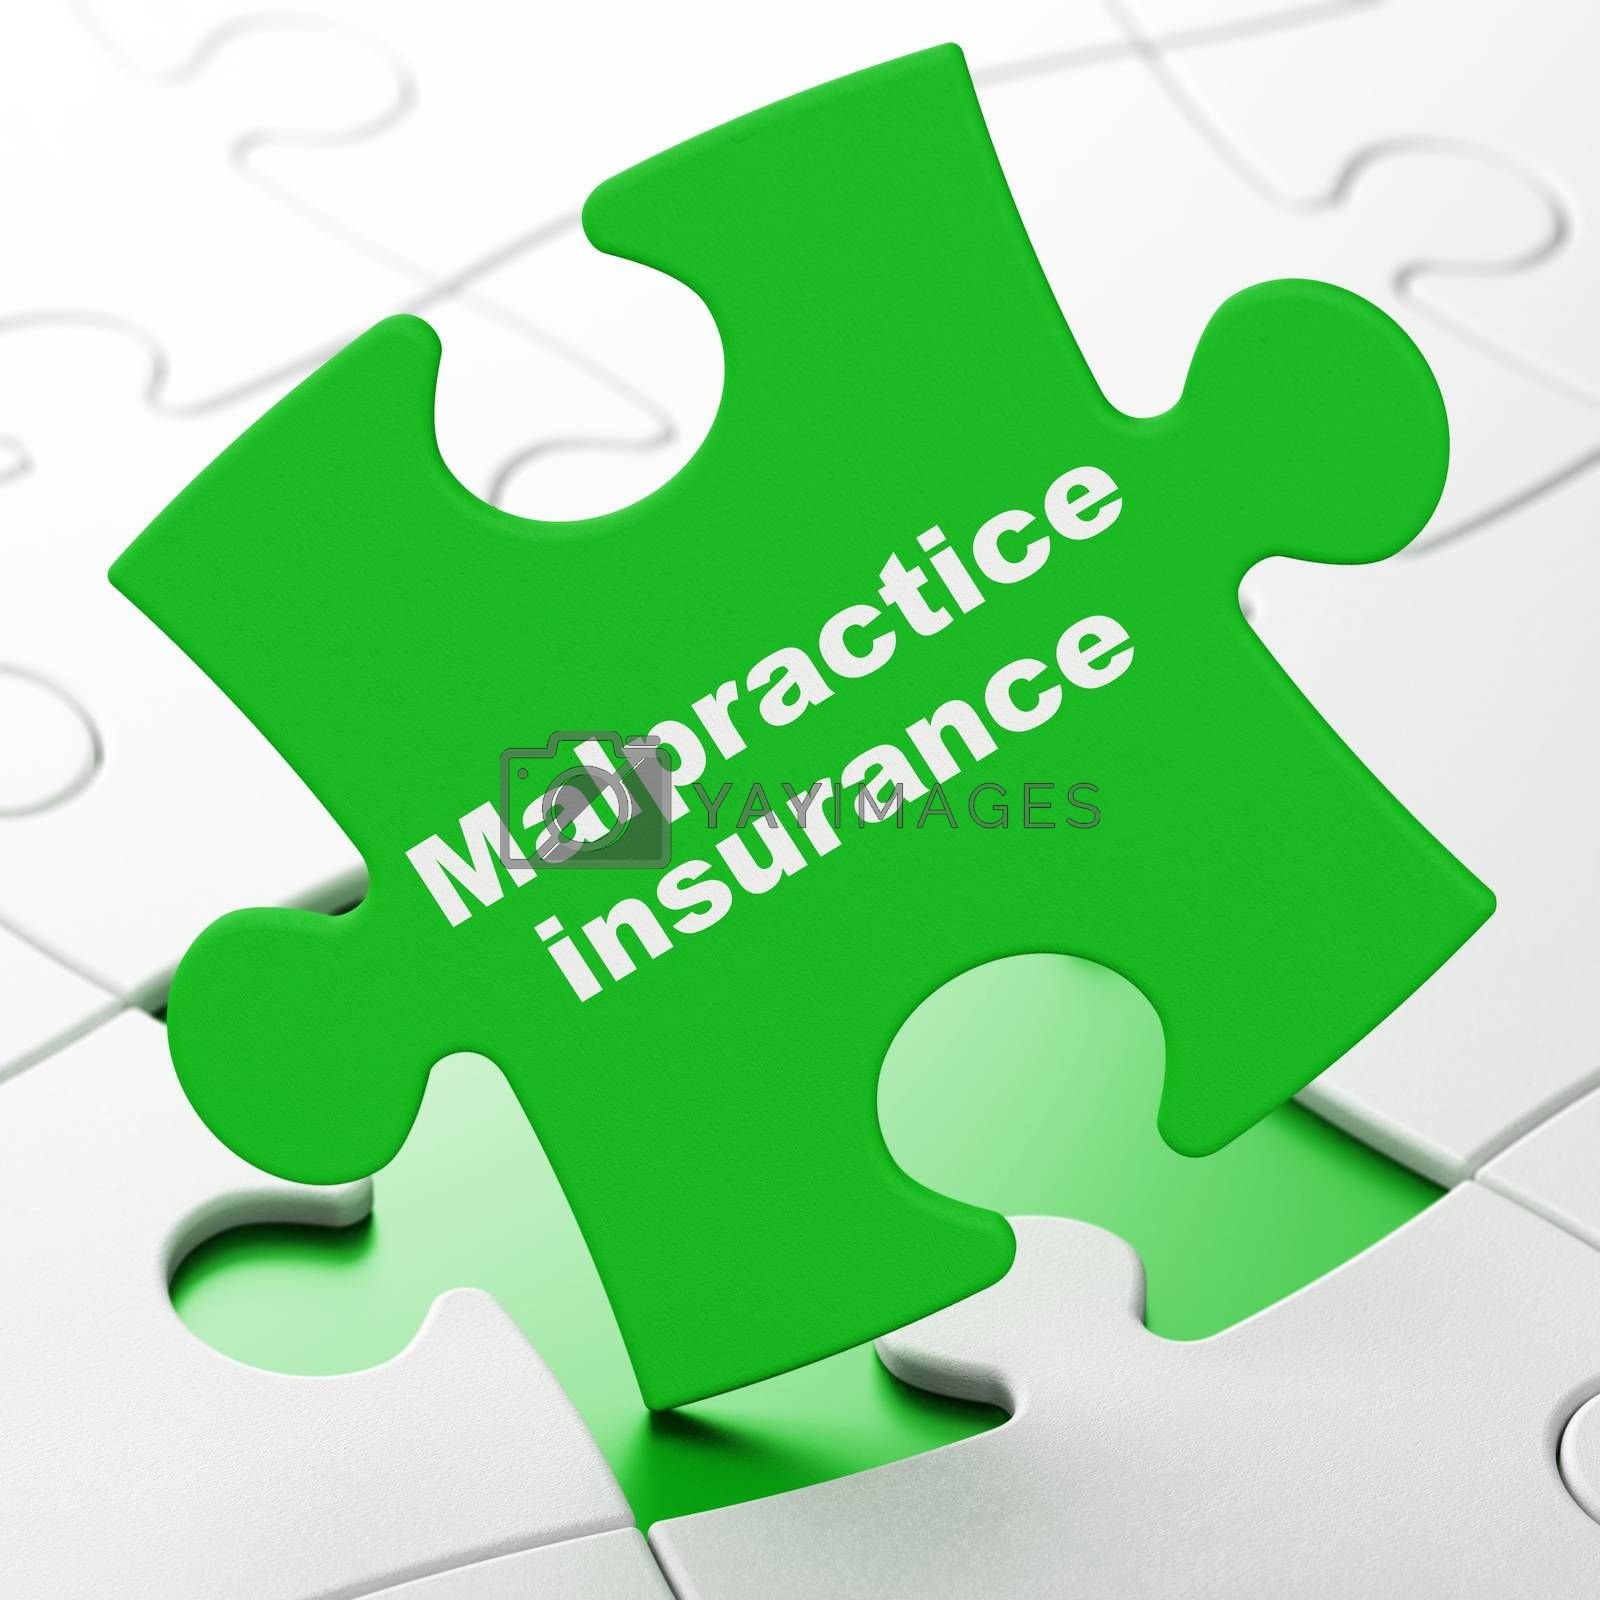 Insurance concept: Malpractice Insurance on Green puzzle pieces background, 3D rendering